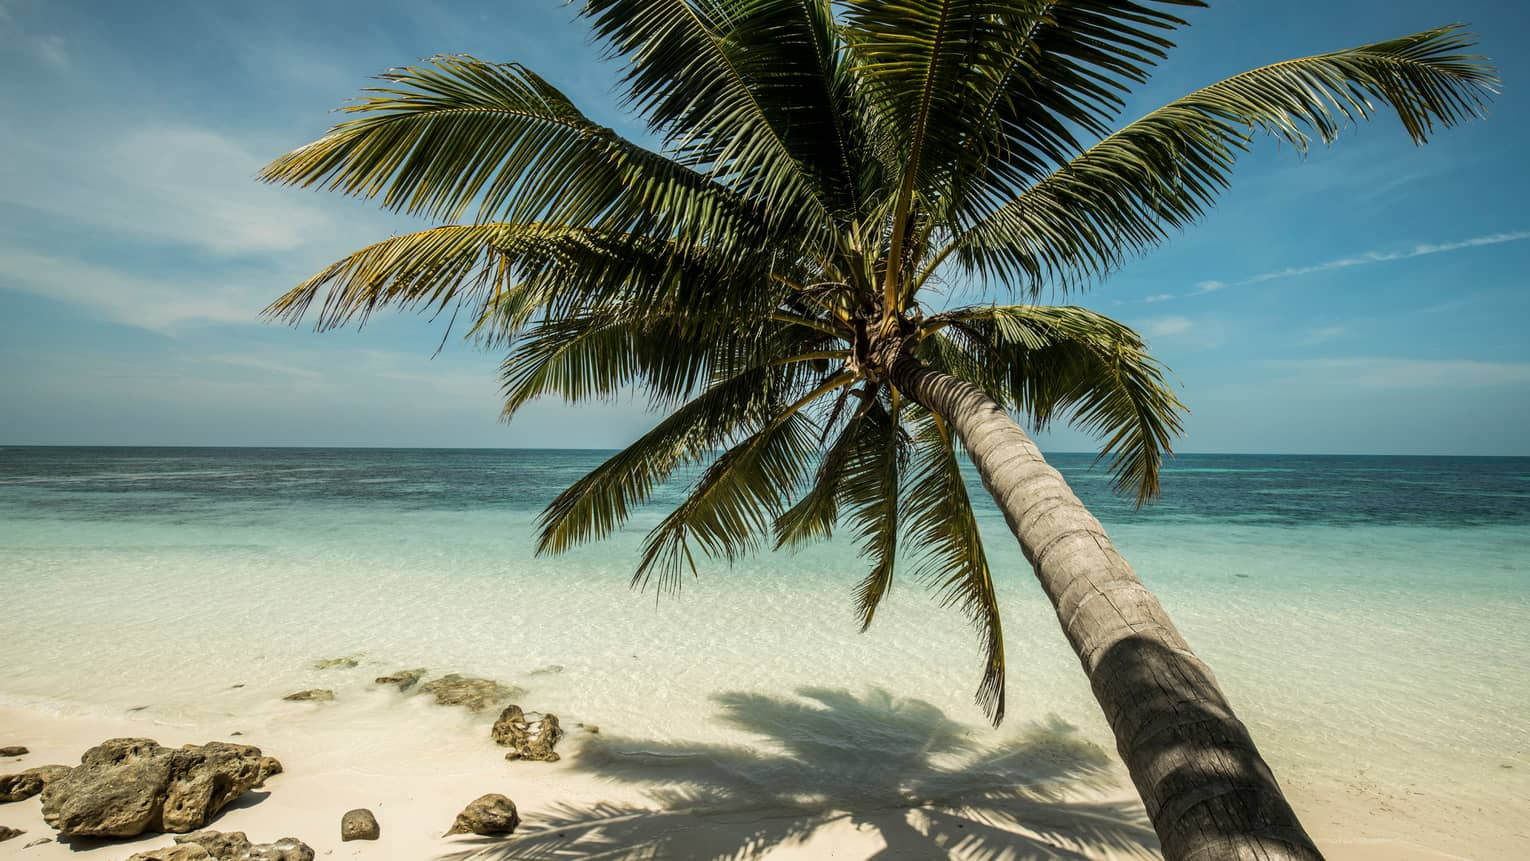 Long palm tree stretches over white sand beach and blue water